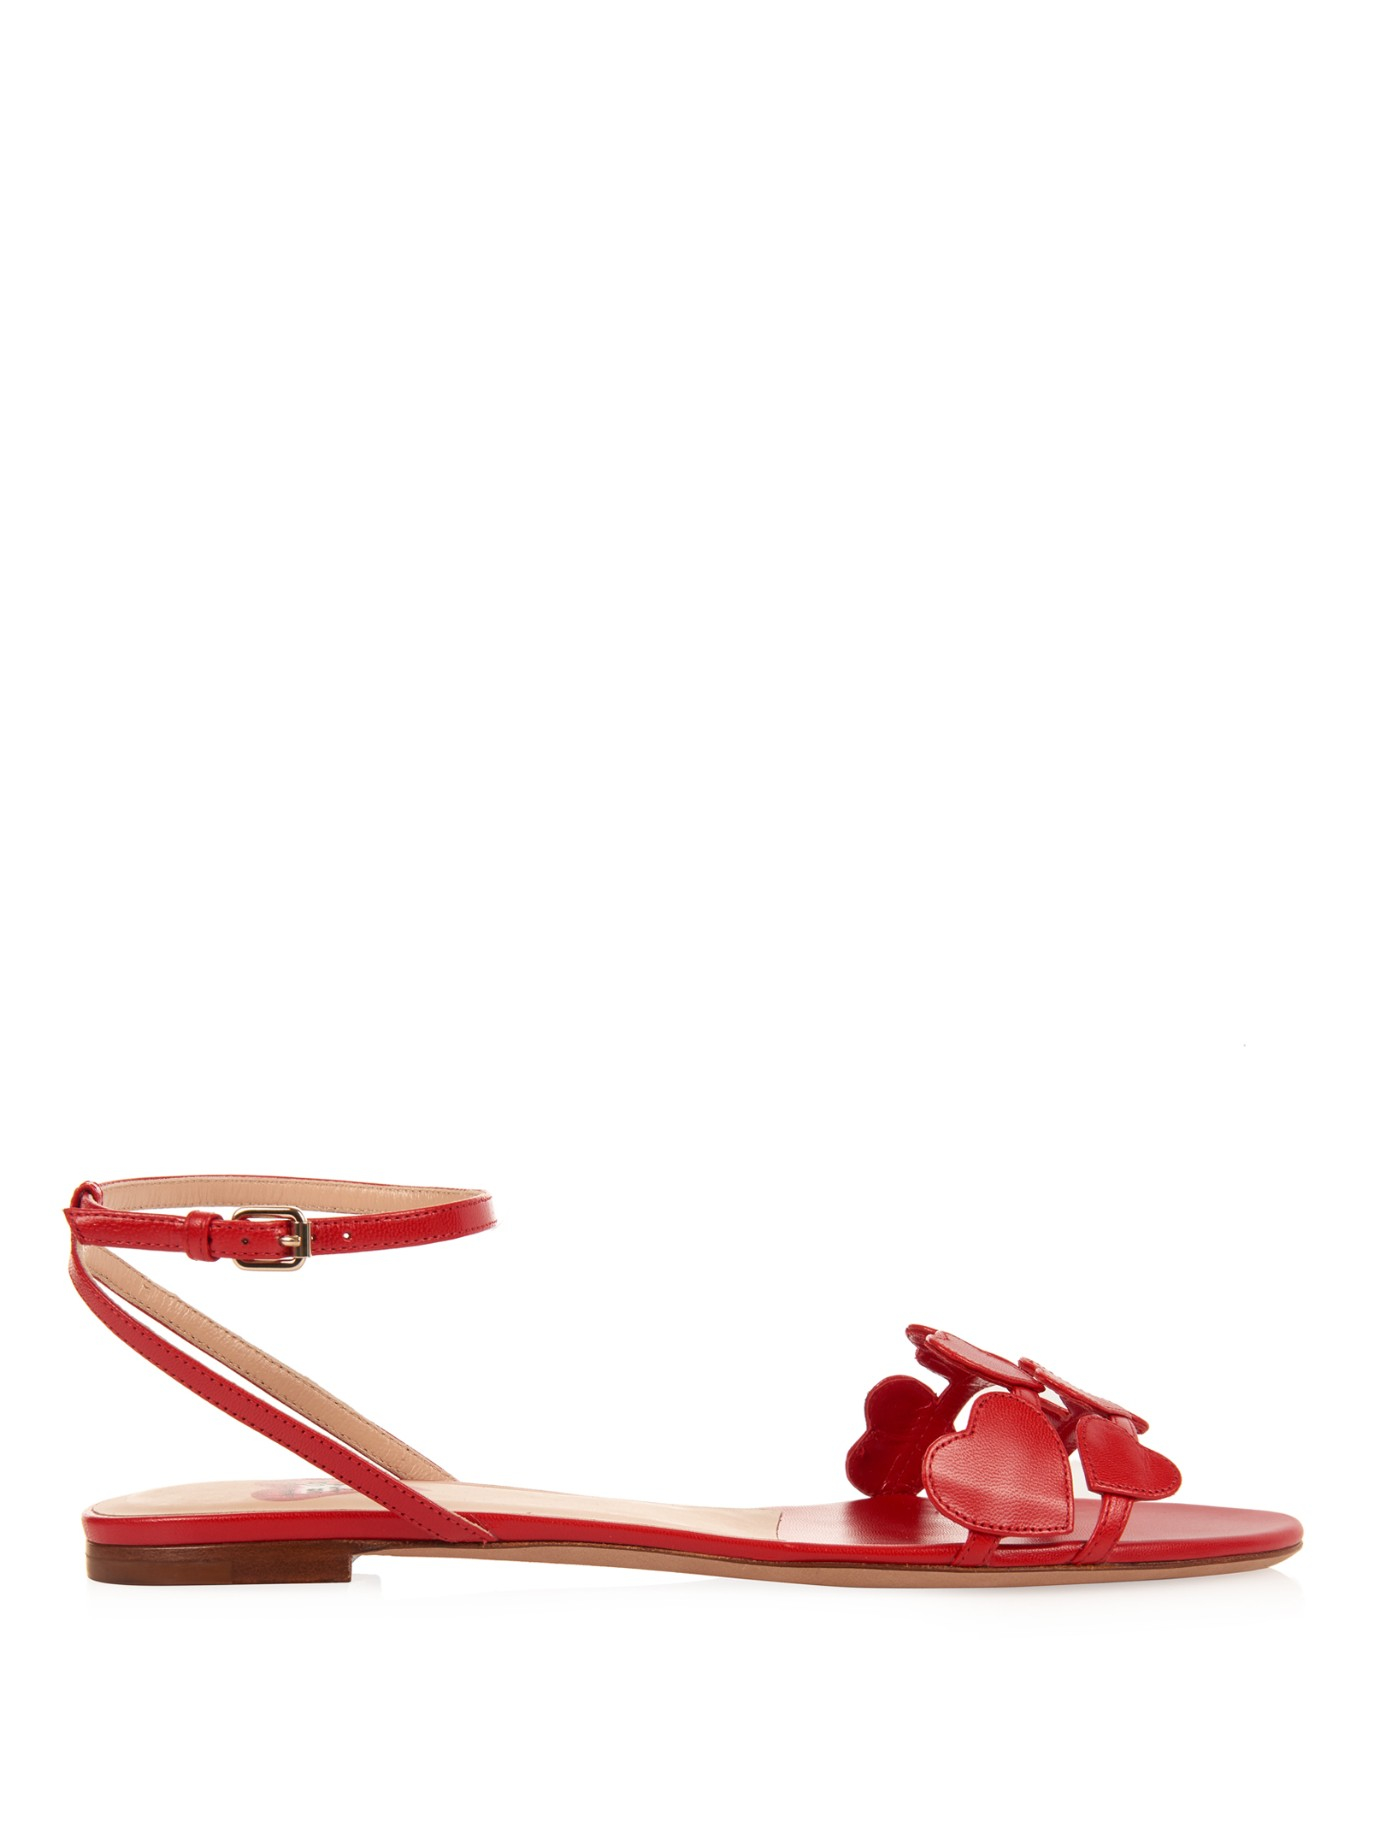 69a01db22131bc Valentino L Amour Leather Flat Sandals in Red - Lyst